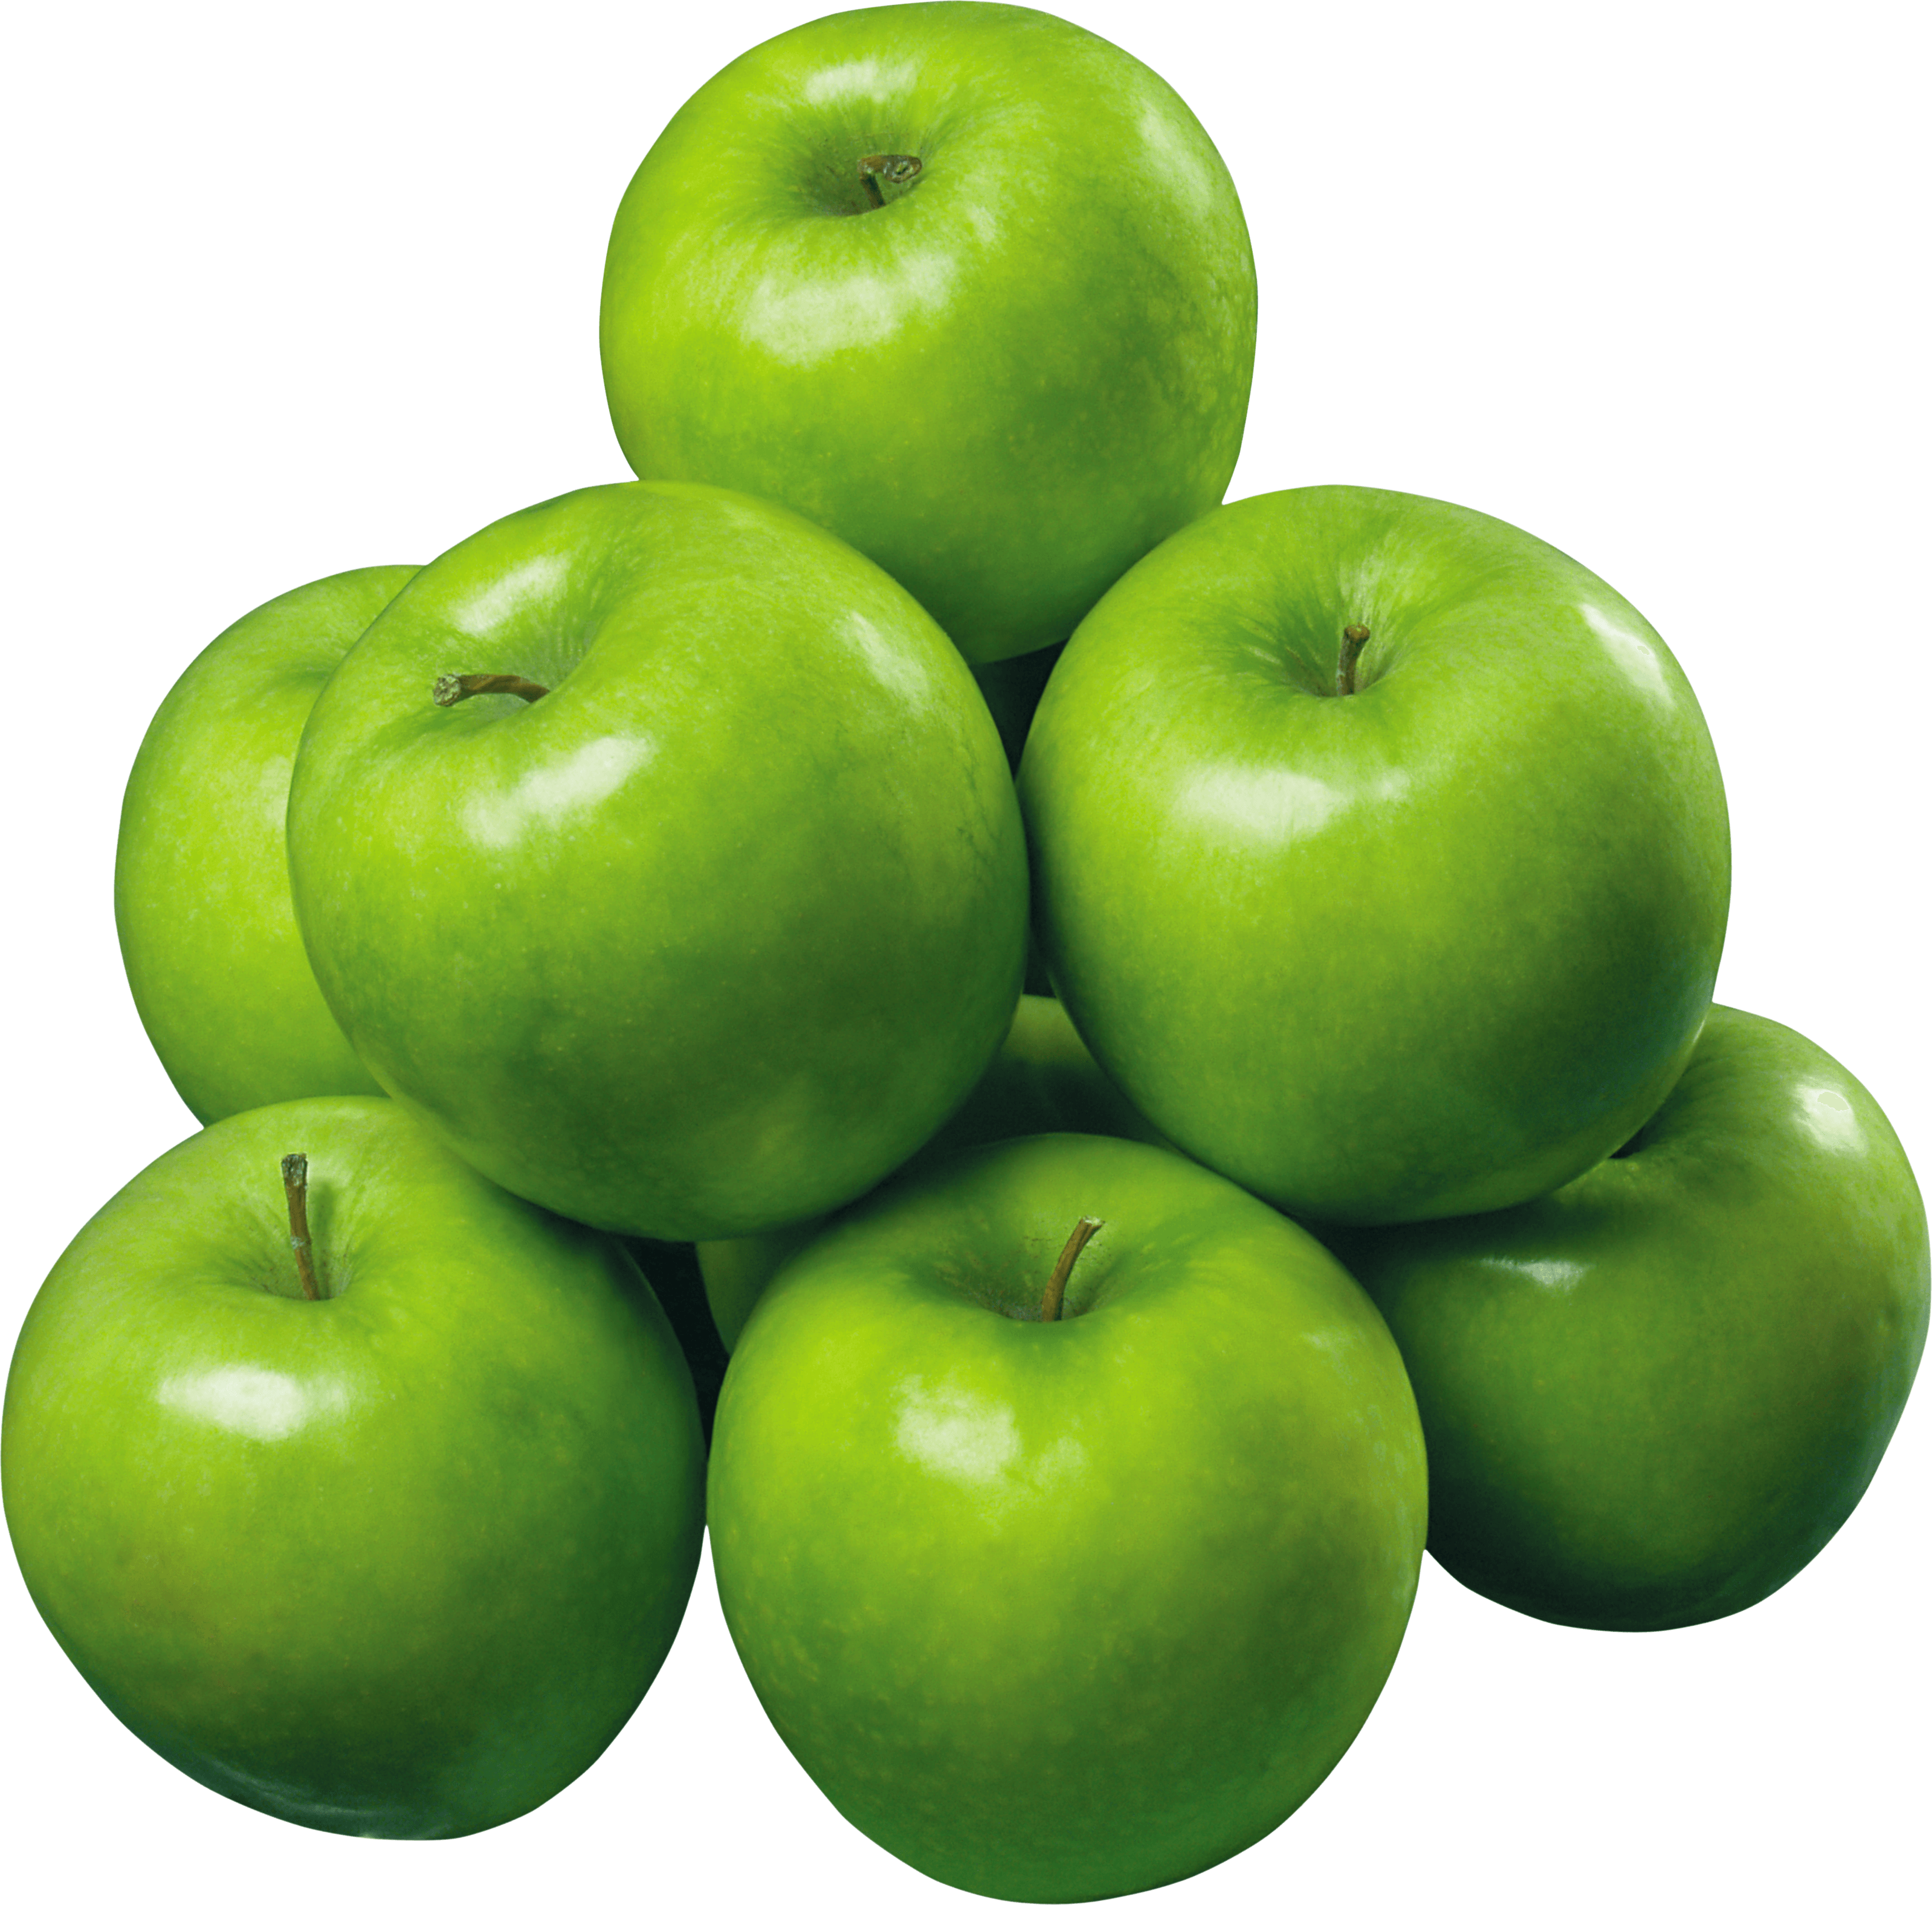 apple png download green apples png image png image pngimg #11698